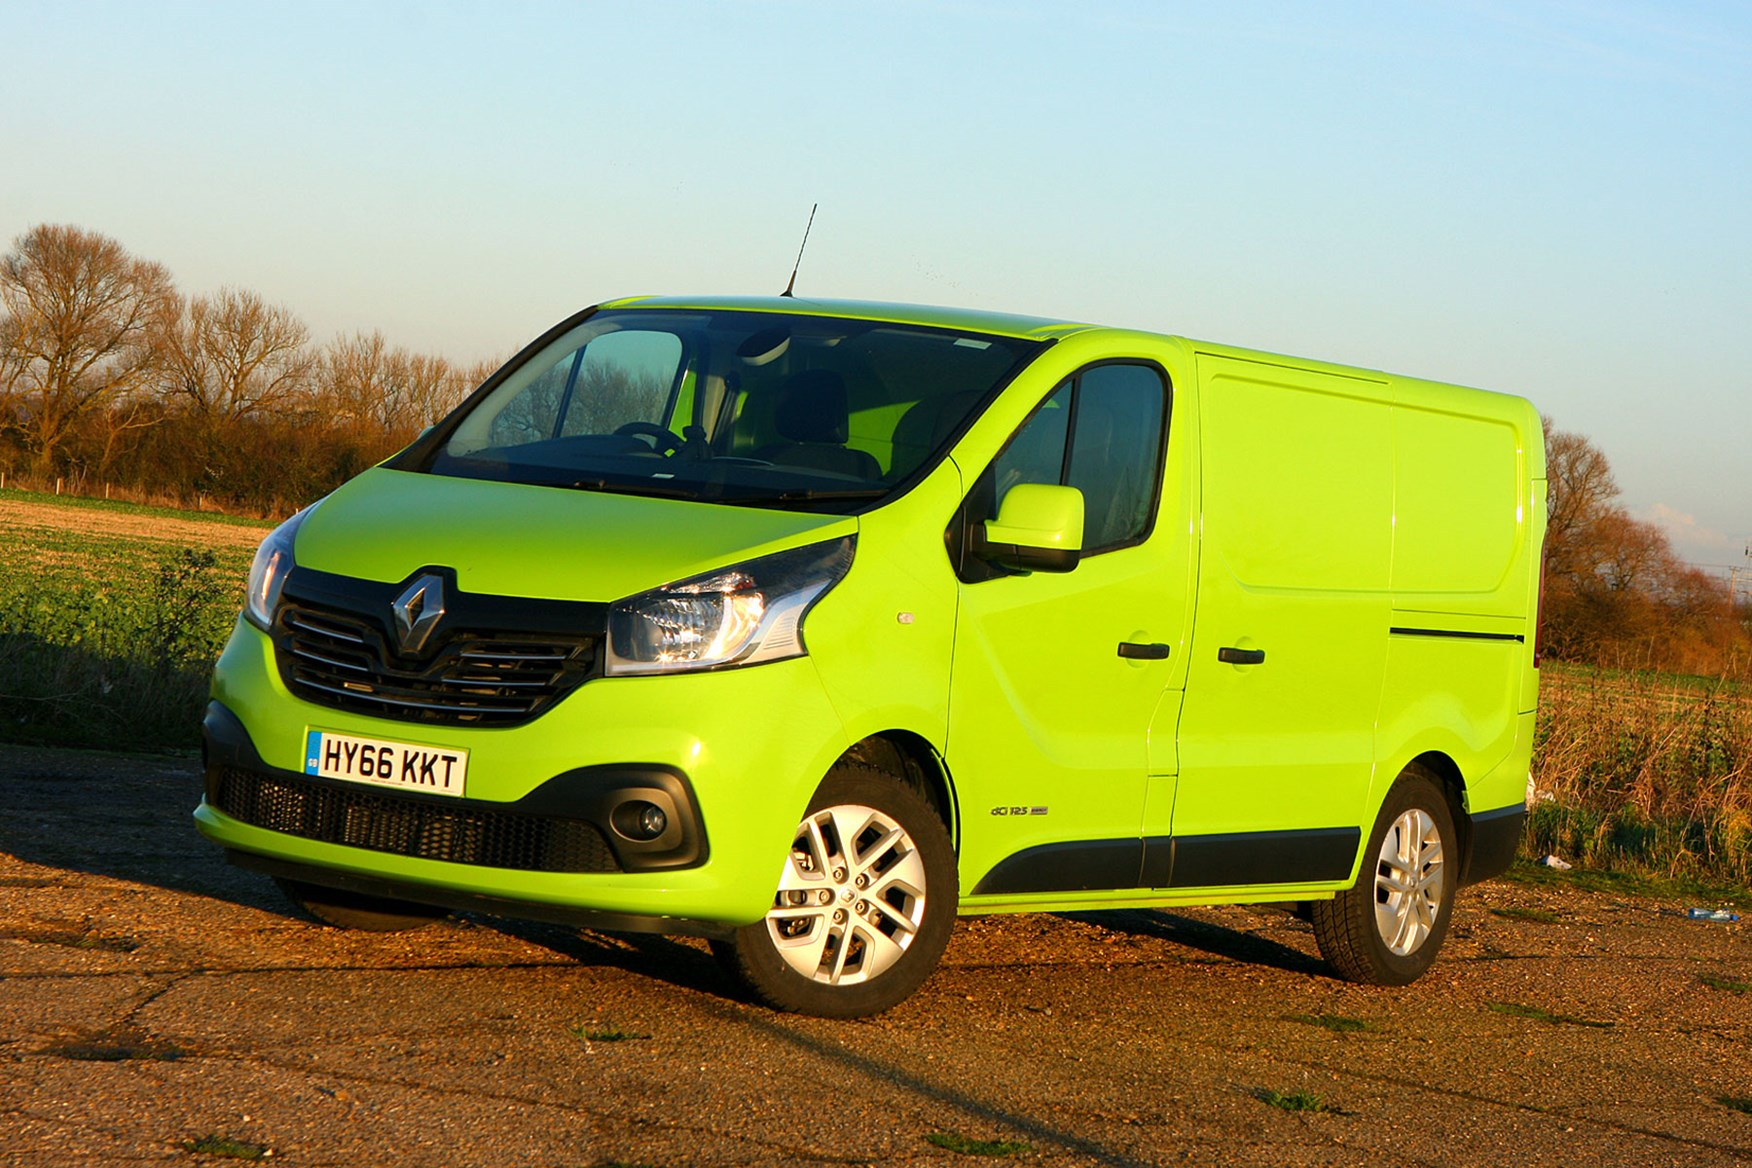 Renault Trafic Sport Euro 6 review - front view, green